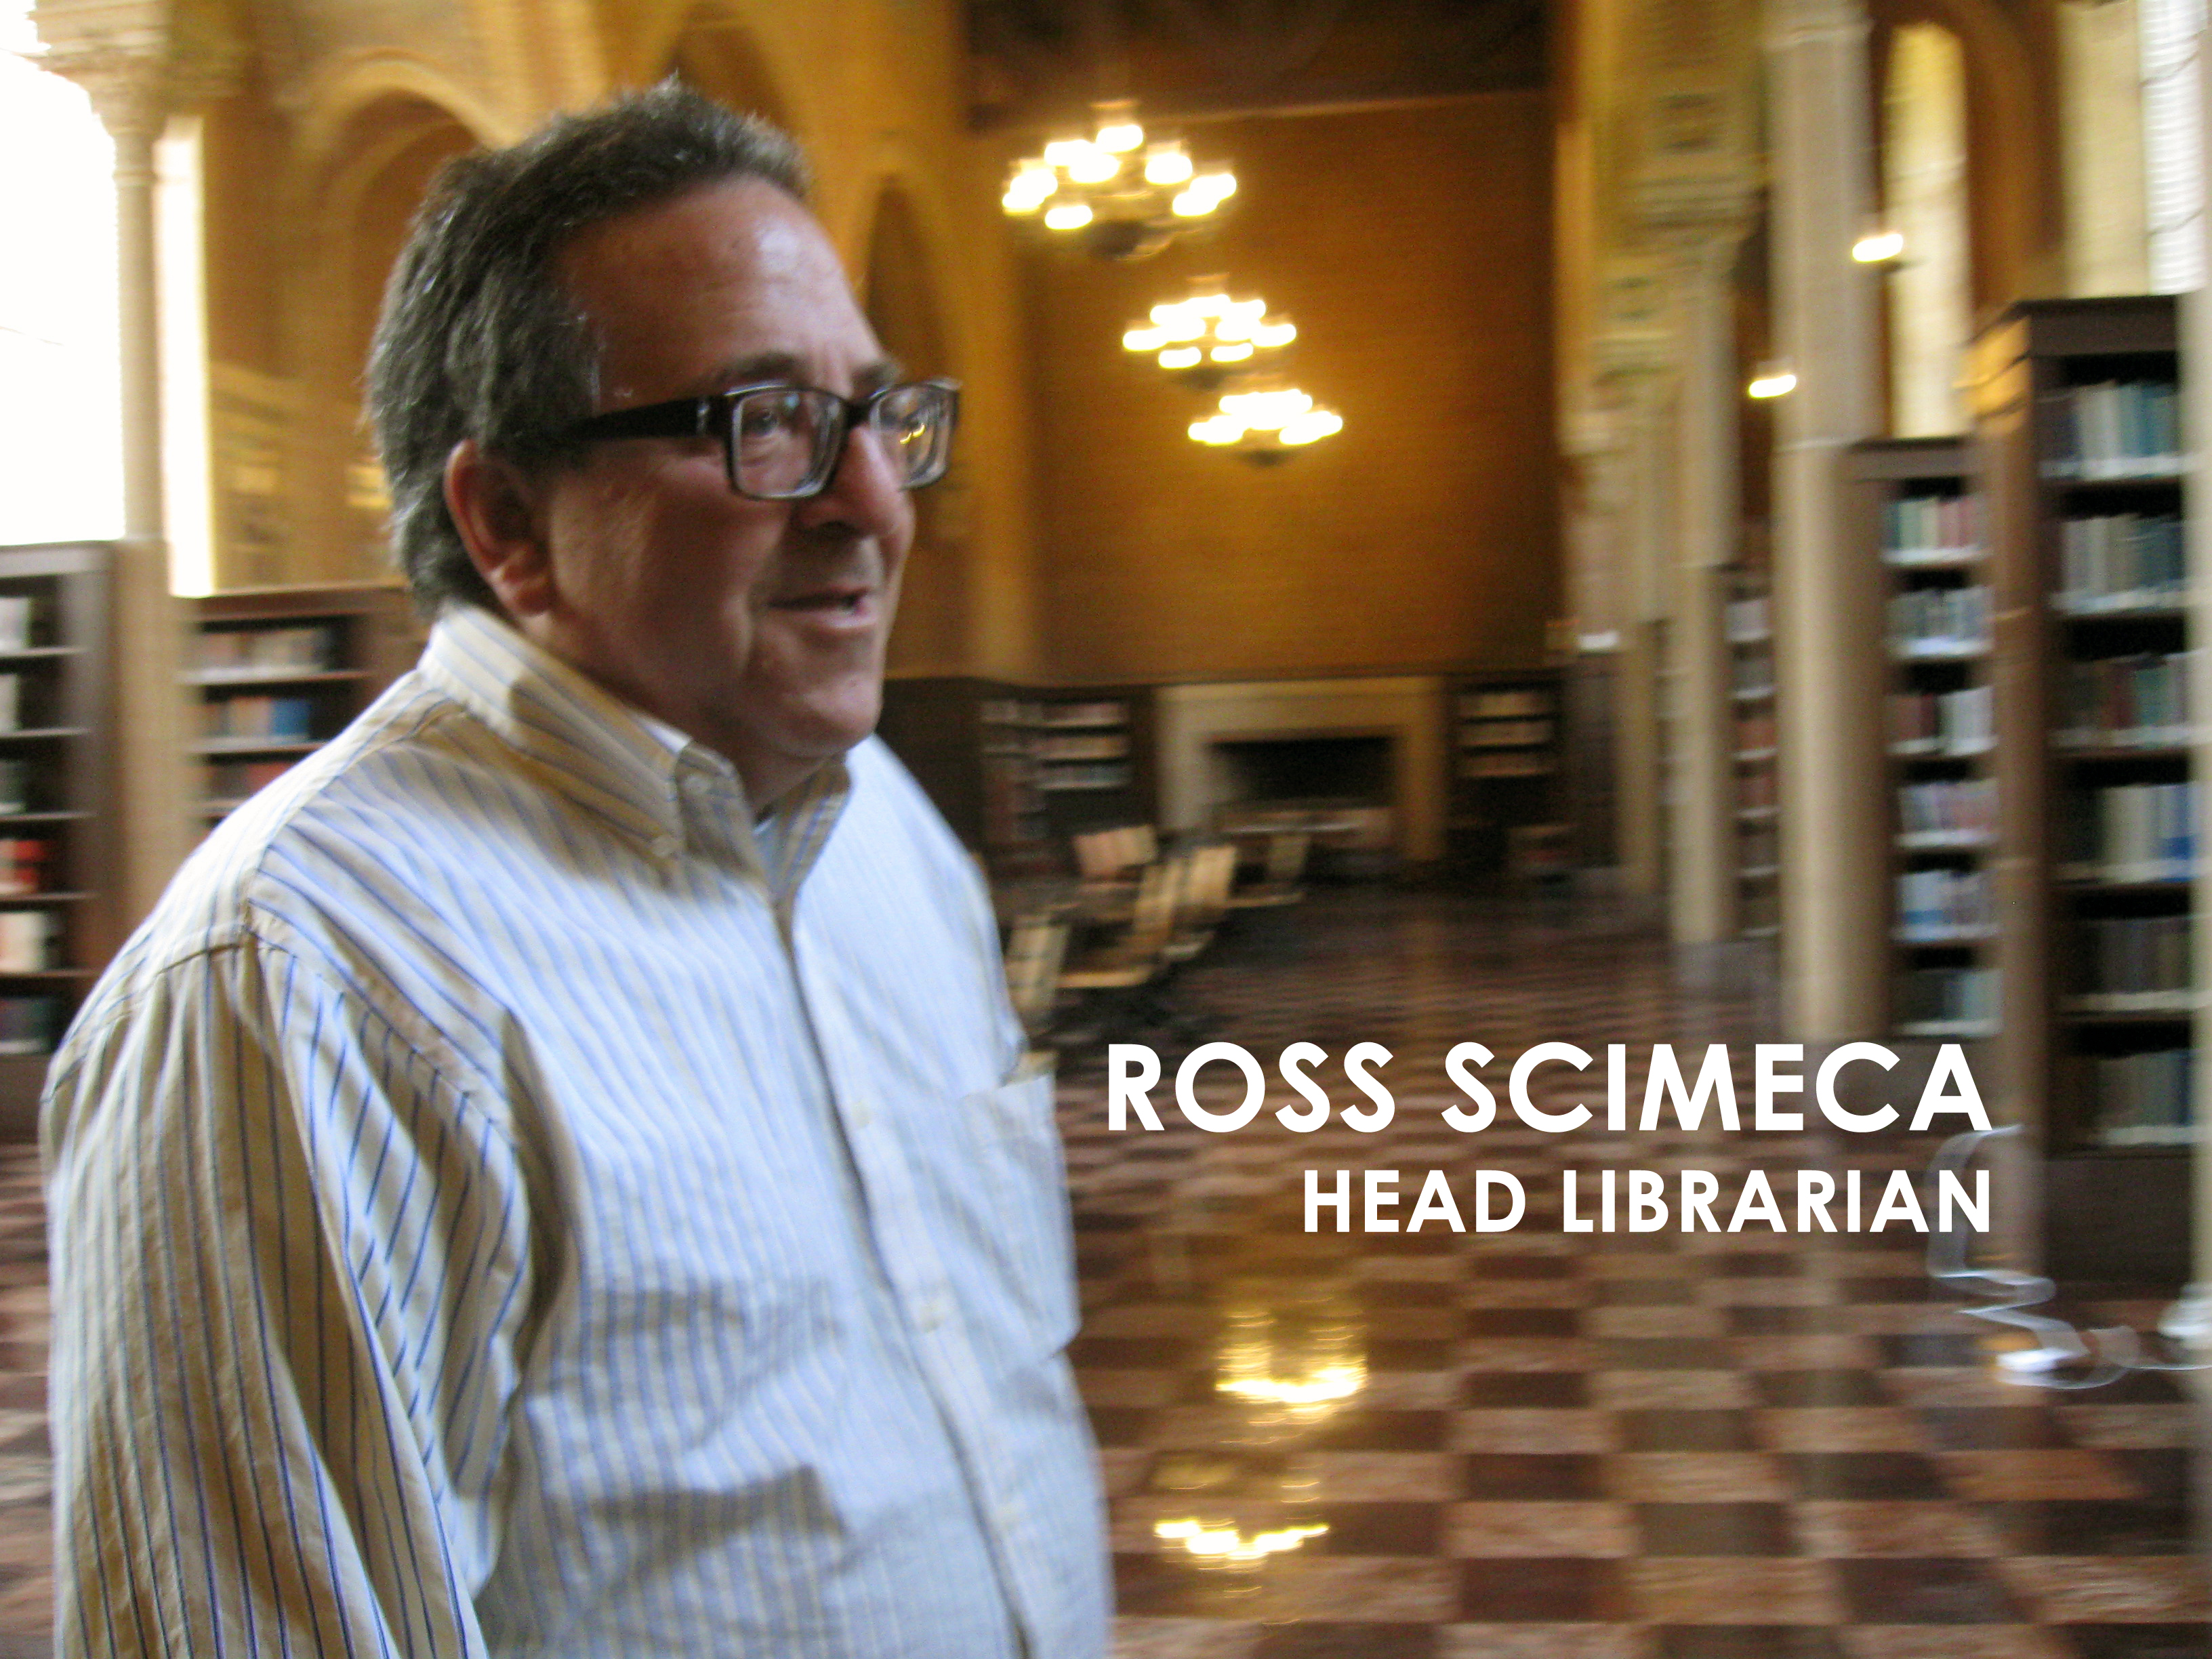 Ross Scimeca's picture